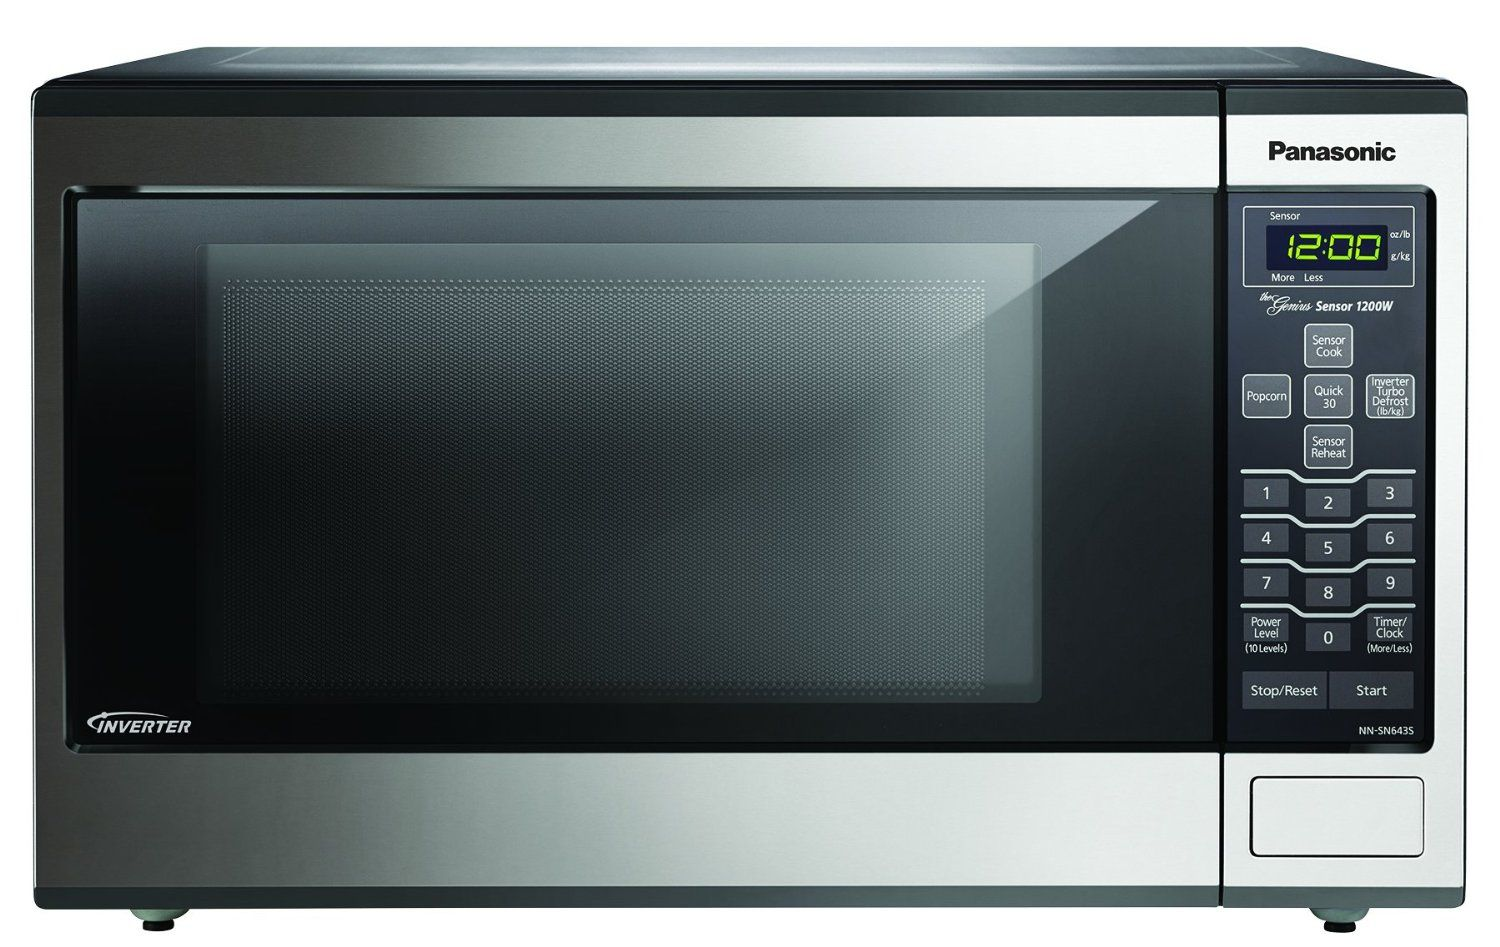 Panasonic Nn Sn643s Stainless 1200w 1 2 Cu Ft Countertop Microwave Oven With Inverter Technology Countertop Microwave Oven Countertop Microwave Built In Microwave Oven